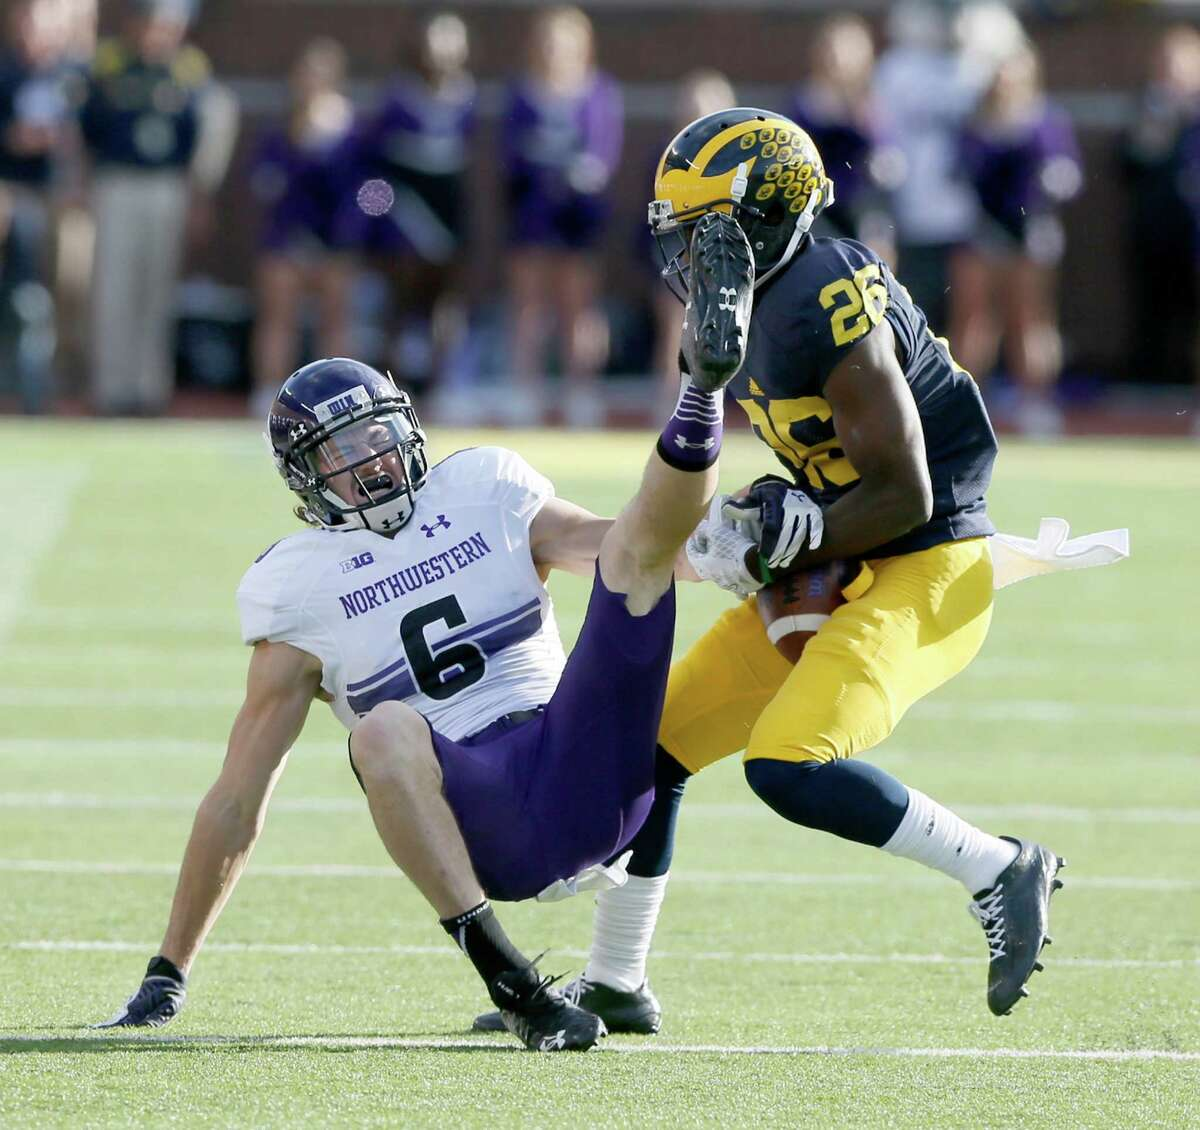 Michigan's Jourdan Lewis, right, breaks up a pass to Northwestern's Mike McHugh, leading to an interception and a 37-yard touchdown return by Lewis in the first half on Saturday, Oct. 10, 2015, at Michigan Stadium in Ann Arbor, Mich. (Julian H. Gonzalez/Detroit Free Press/TNS)